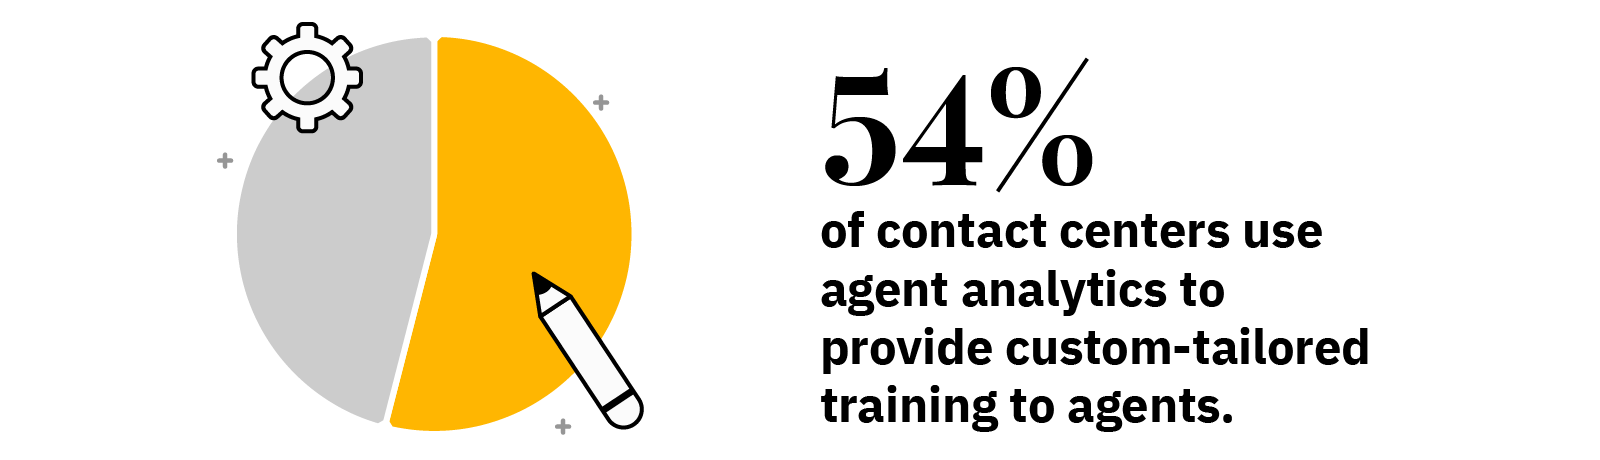 54% of contact centers use agent analytics to provide custom-tailored training to agents.